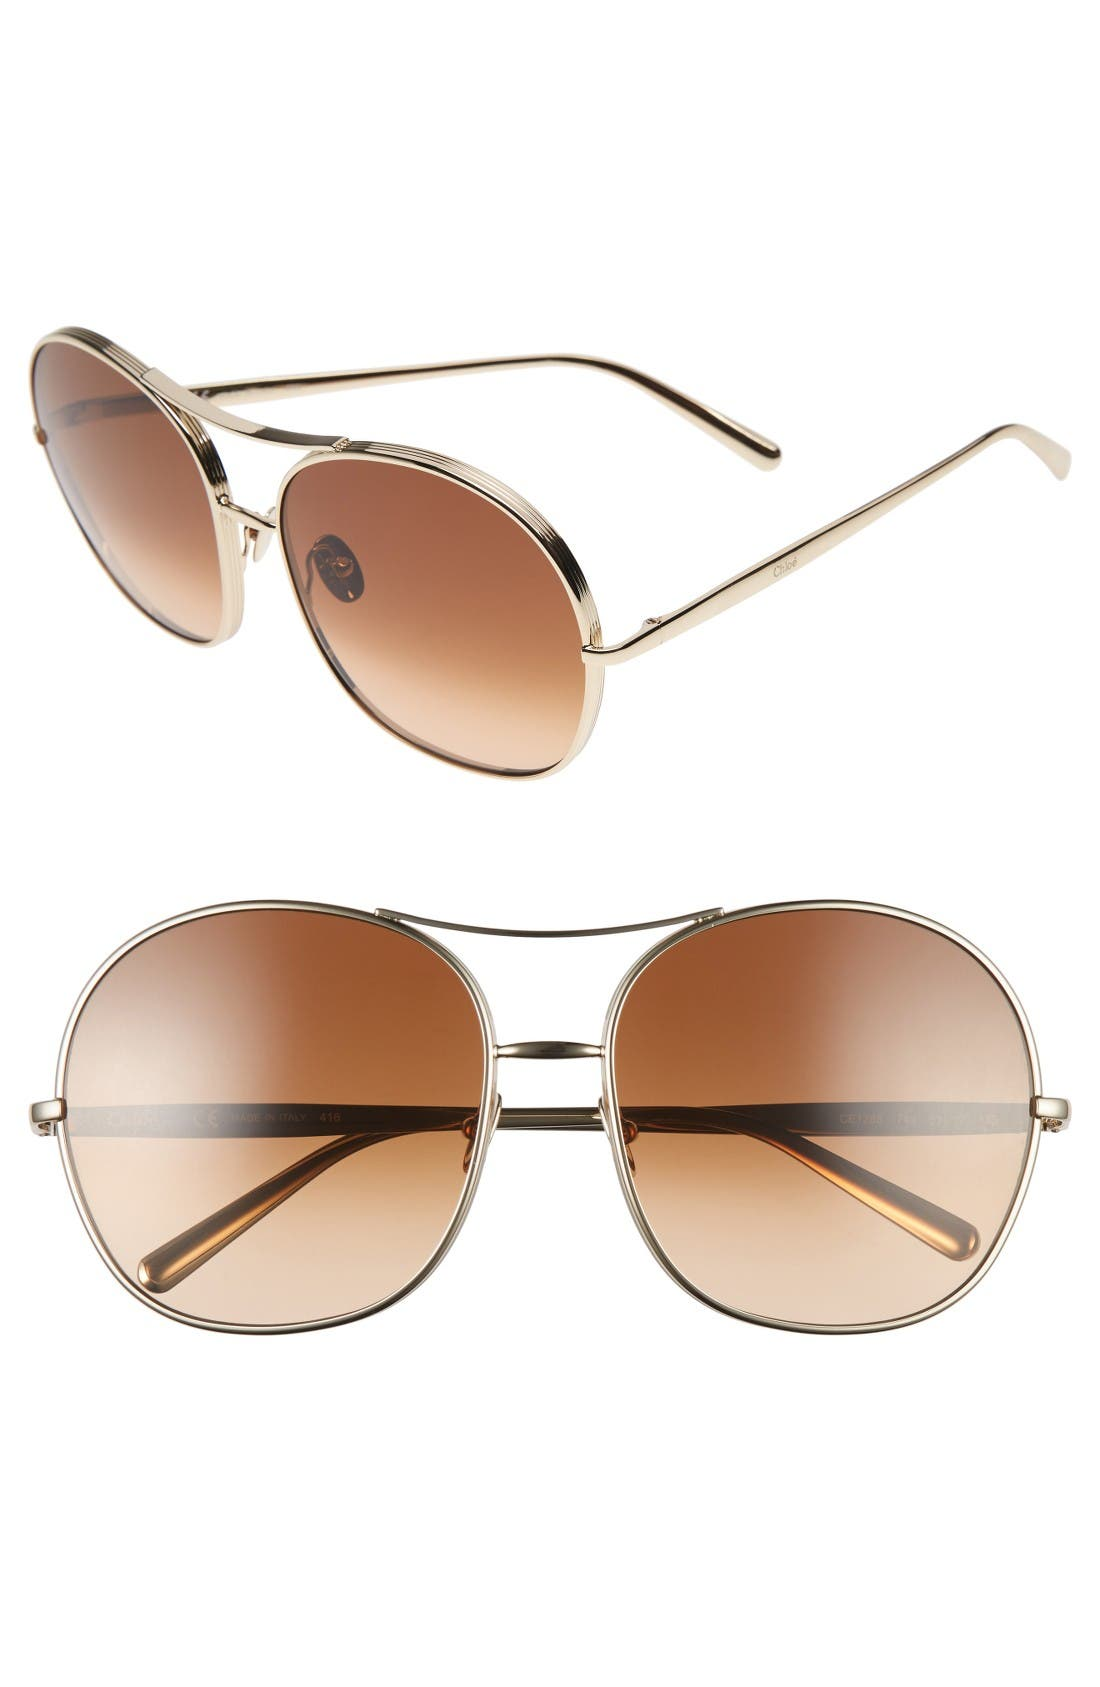 61mm Oversize Aviator Sunglasses,                             Main thumbnail 1, color,                             Gold/ Brown